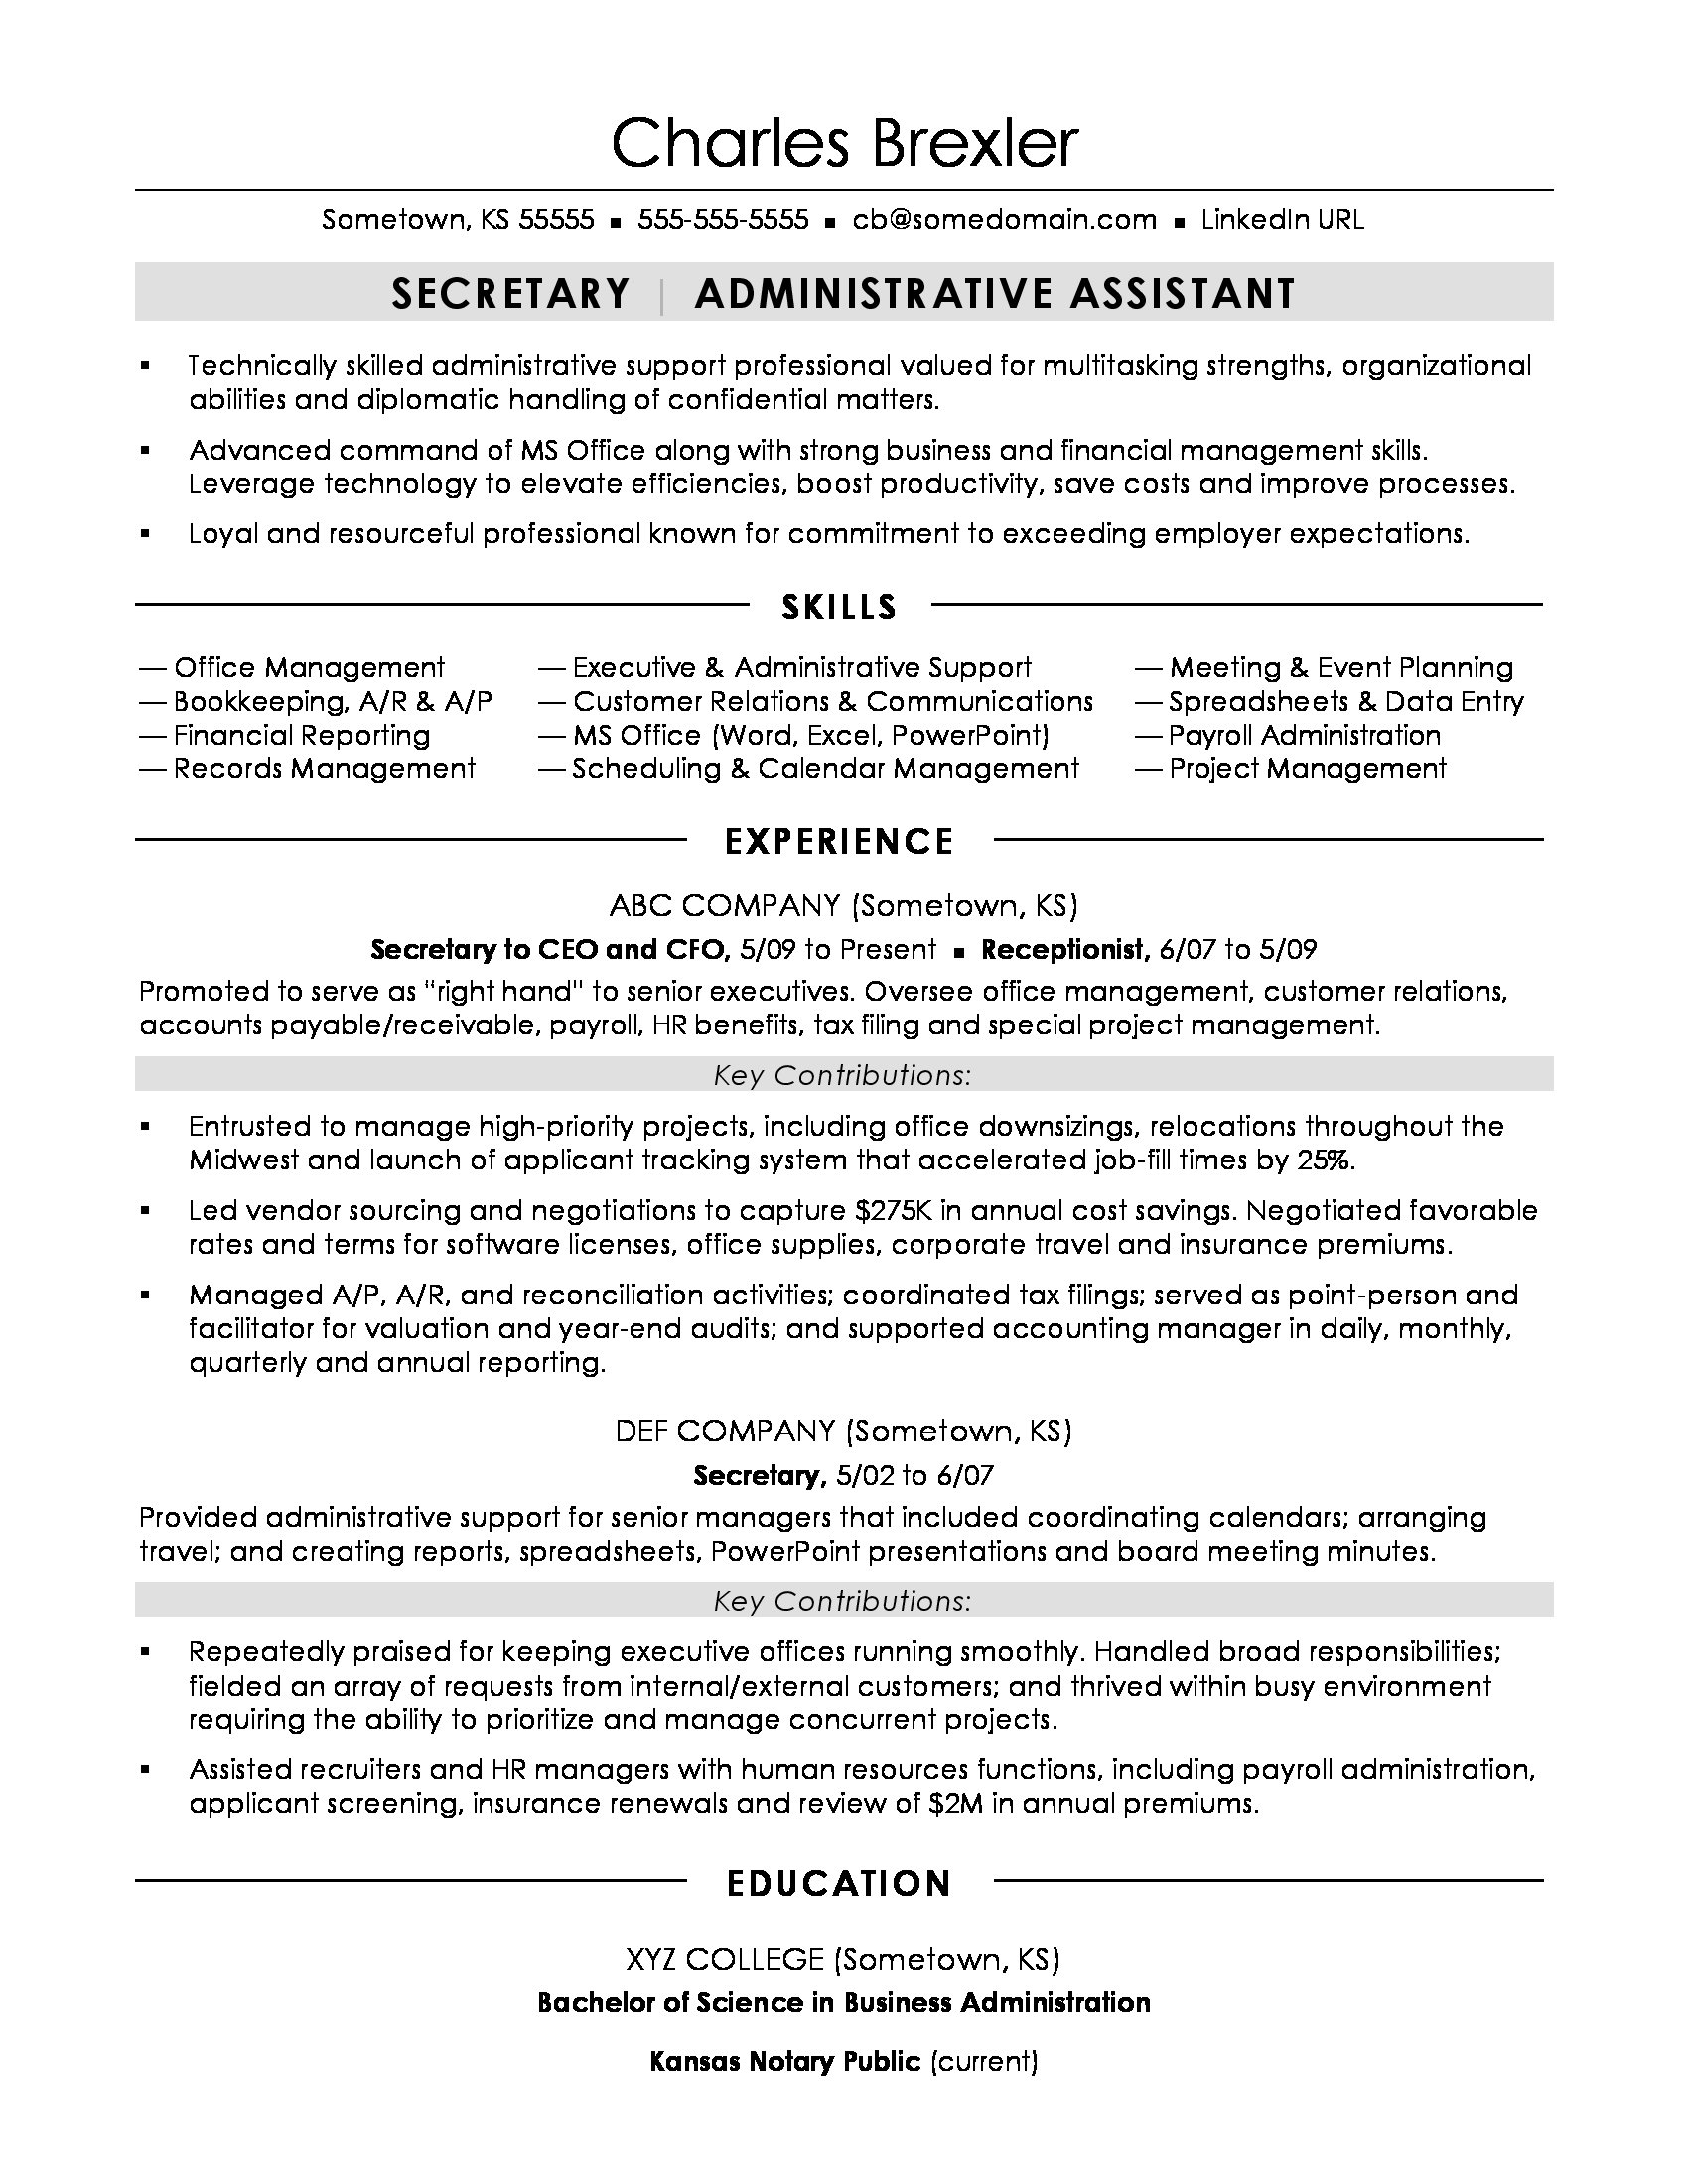 secretary resume sample - Administrative Resume Samples